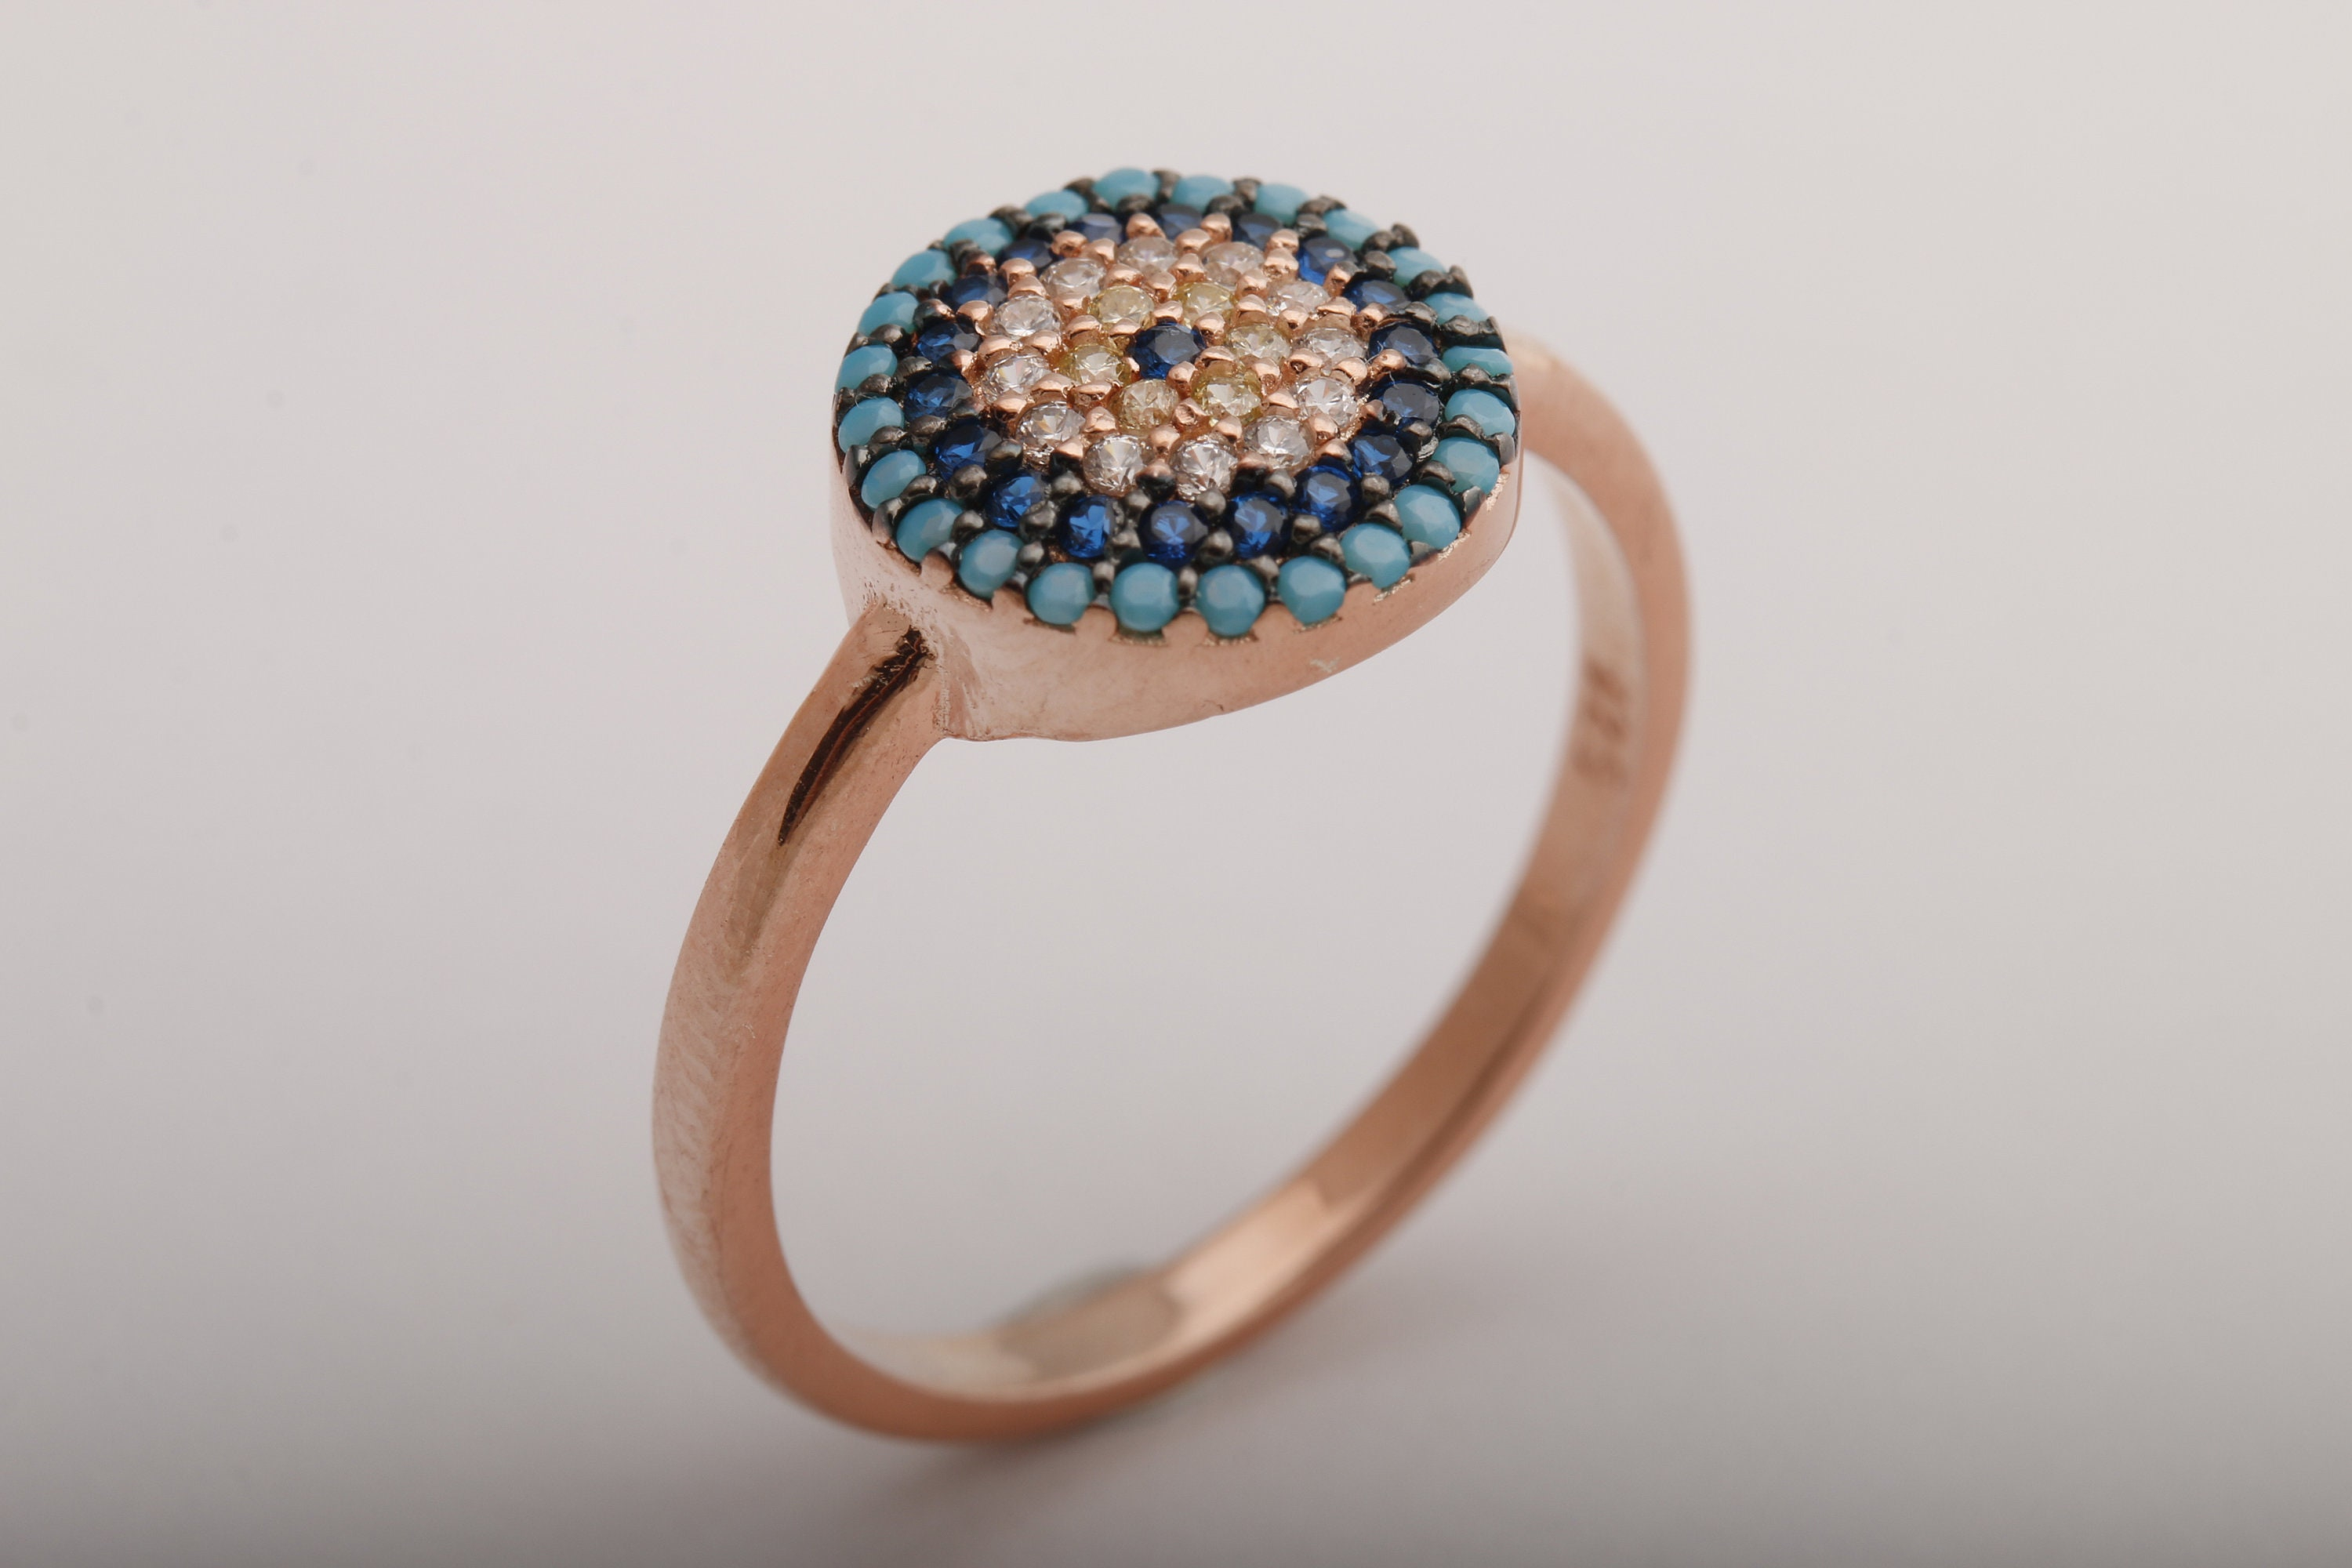 3a1e02db941ce0 Stunning Turkish Handmade Jewelry Round Cut Turquoise Zircon 925 Sterling Silver  Ring Size Options Bands